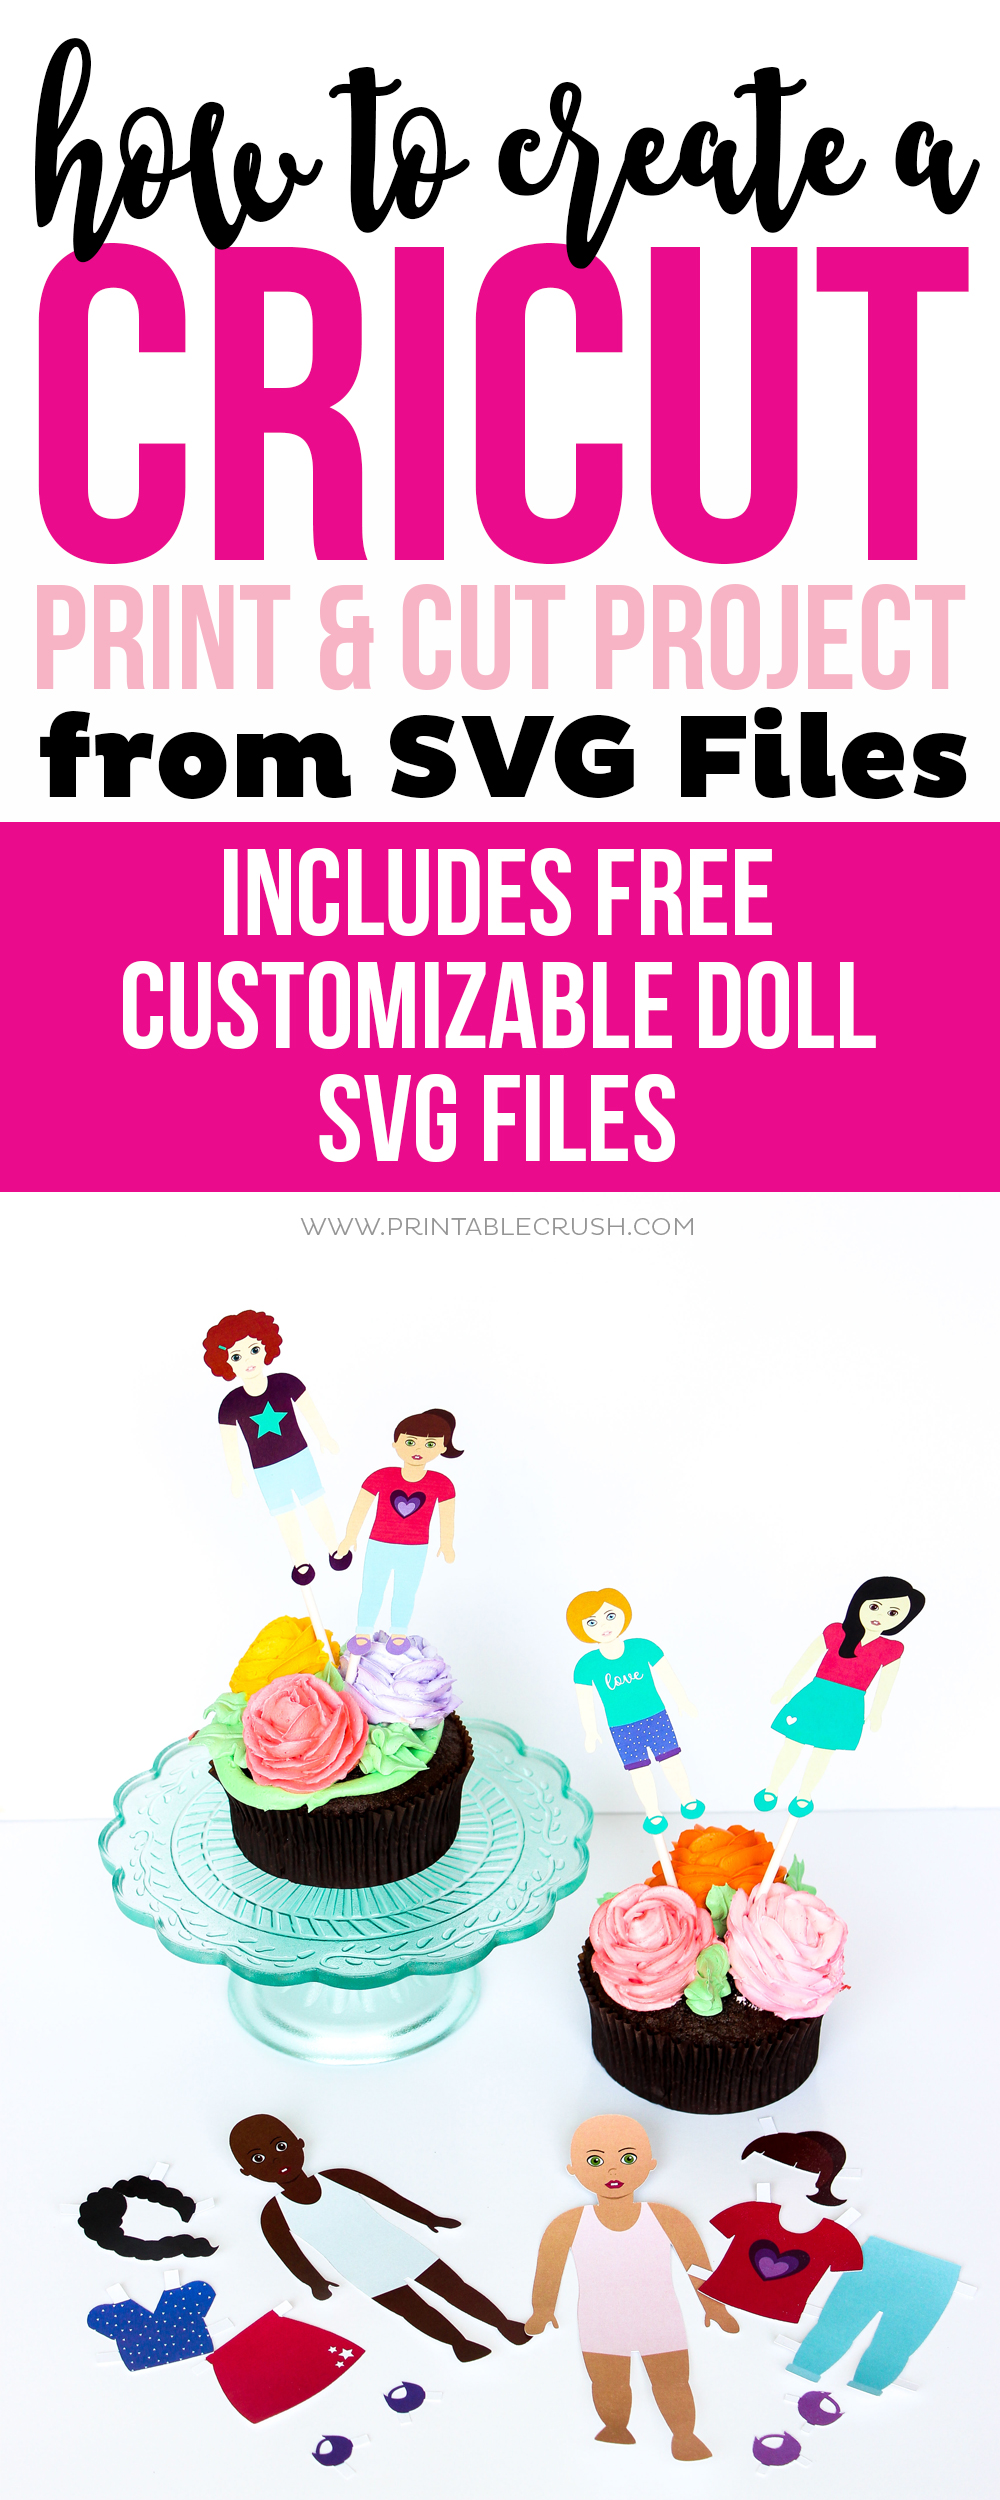 How To Create A Cricut Print Cut Project From Svg Files